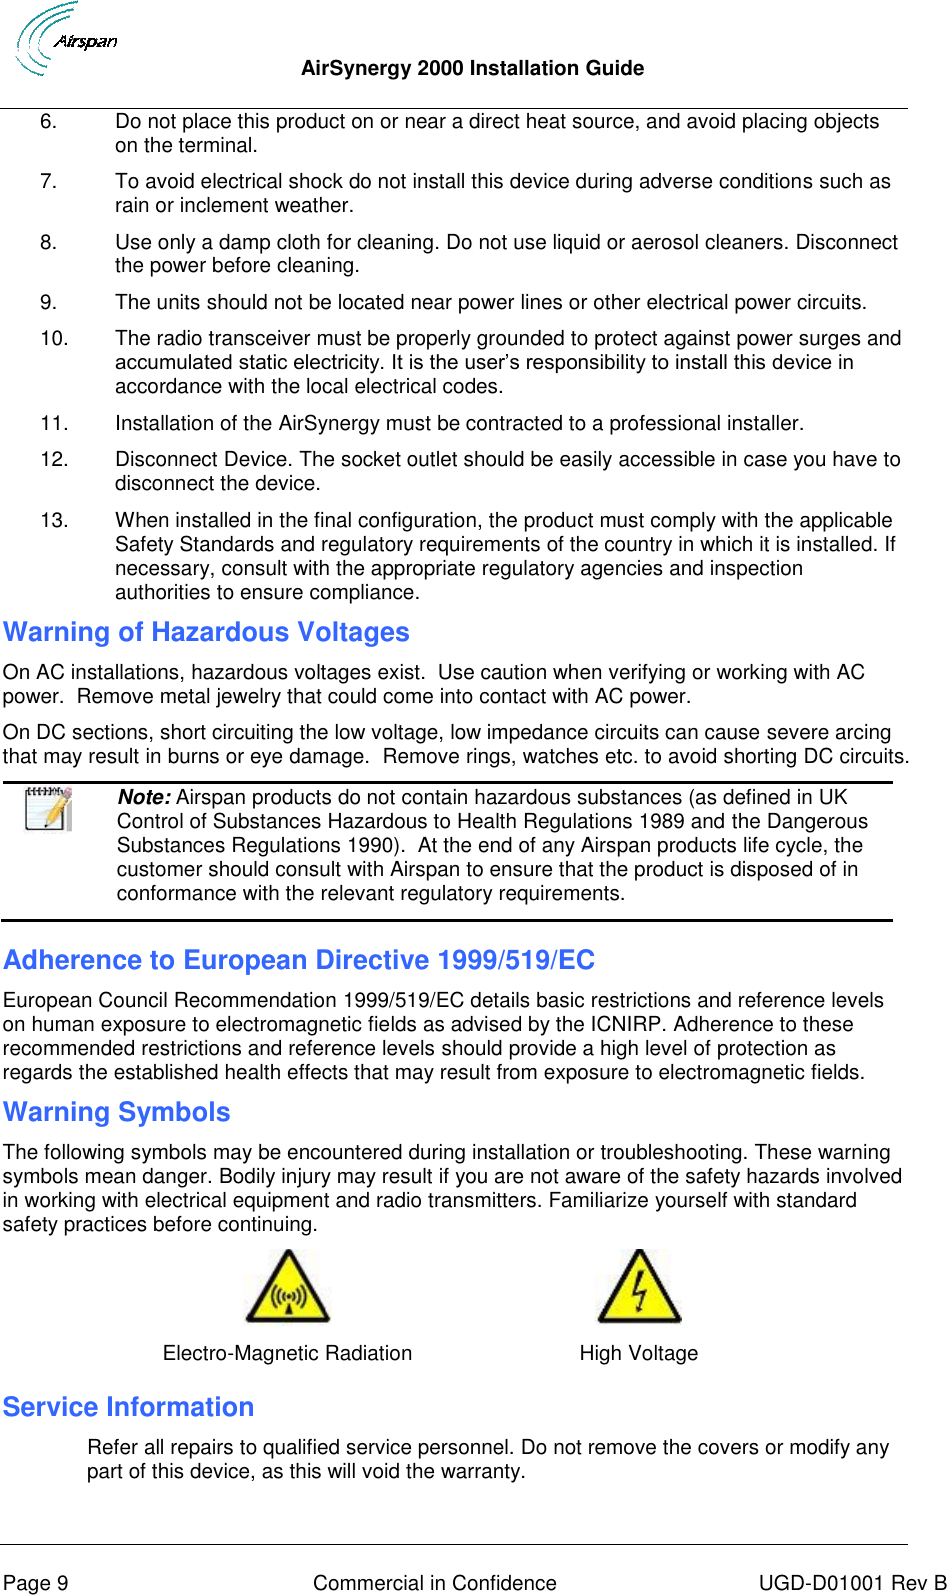 Current Systems Ac Dc And Voltage Levels Basics You Must Manual Guide